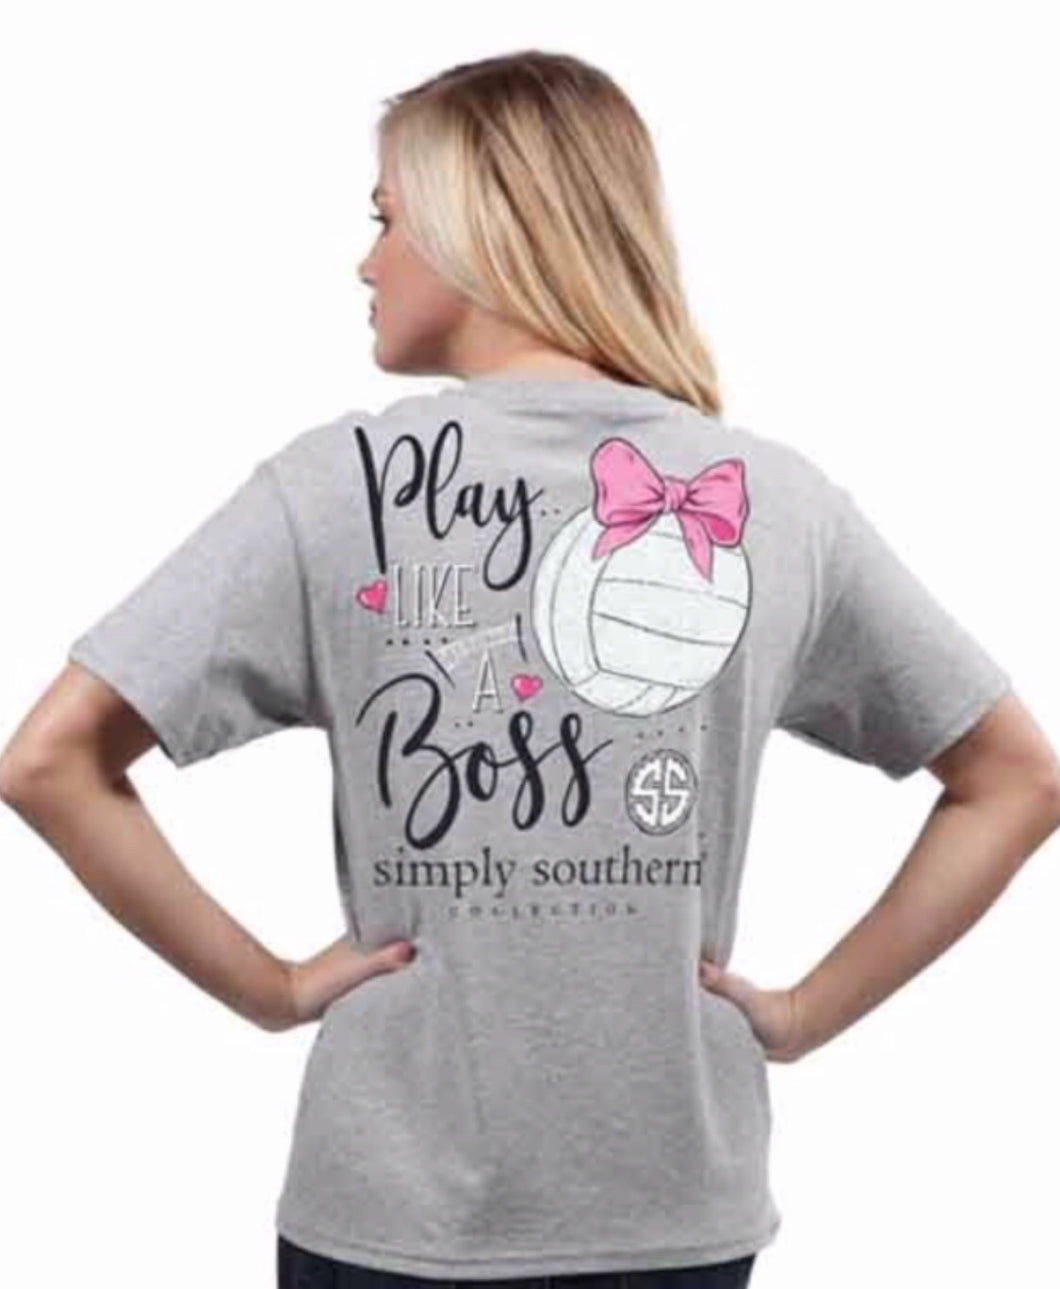 Simply Southern ~ Play like a Boss Volleyball